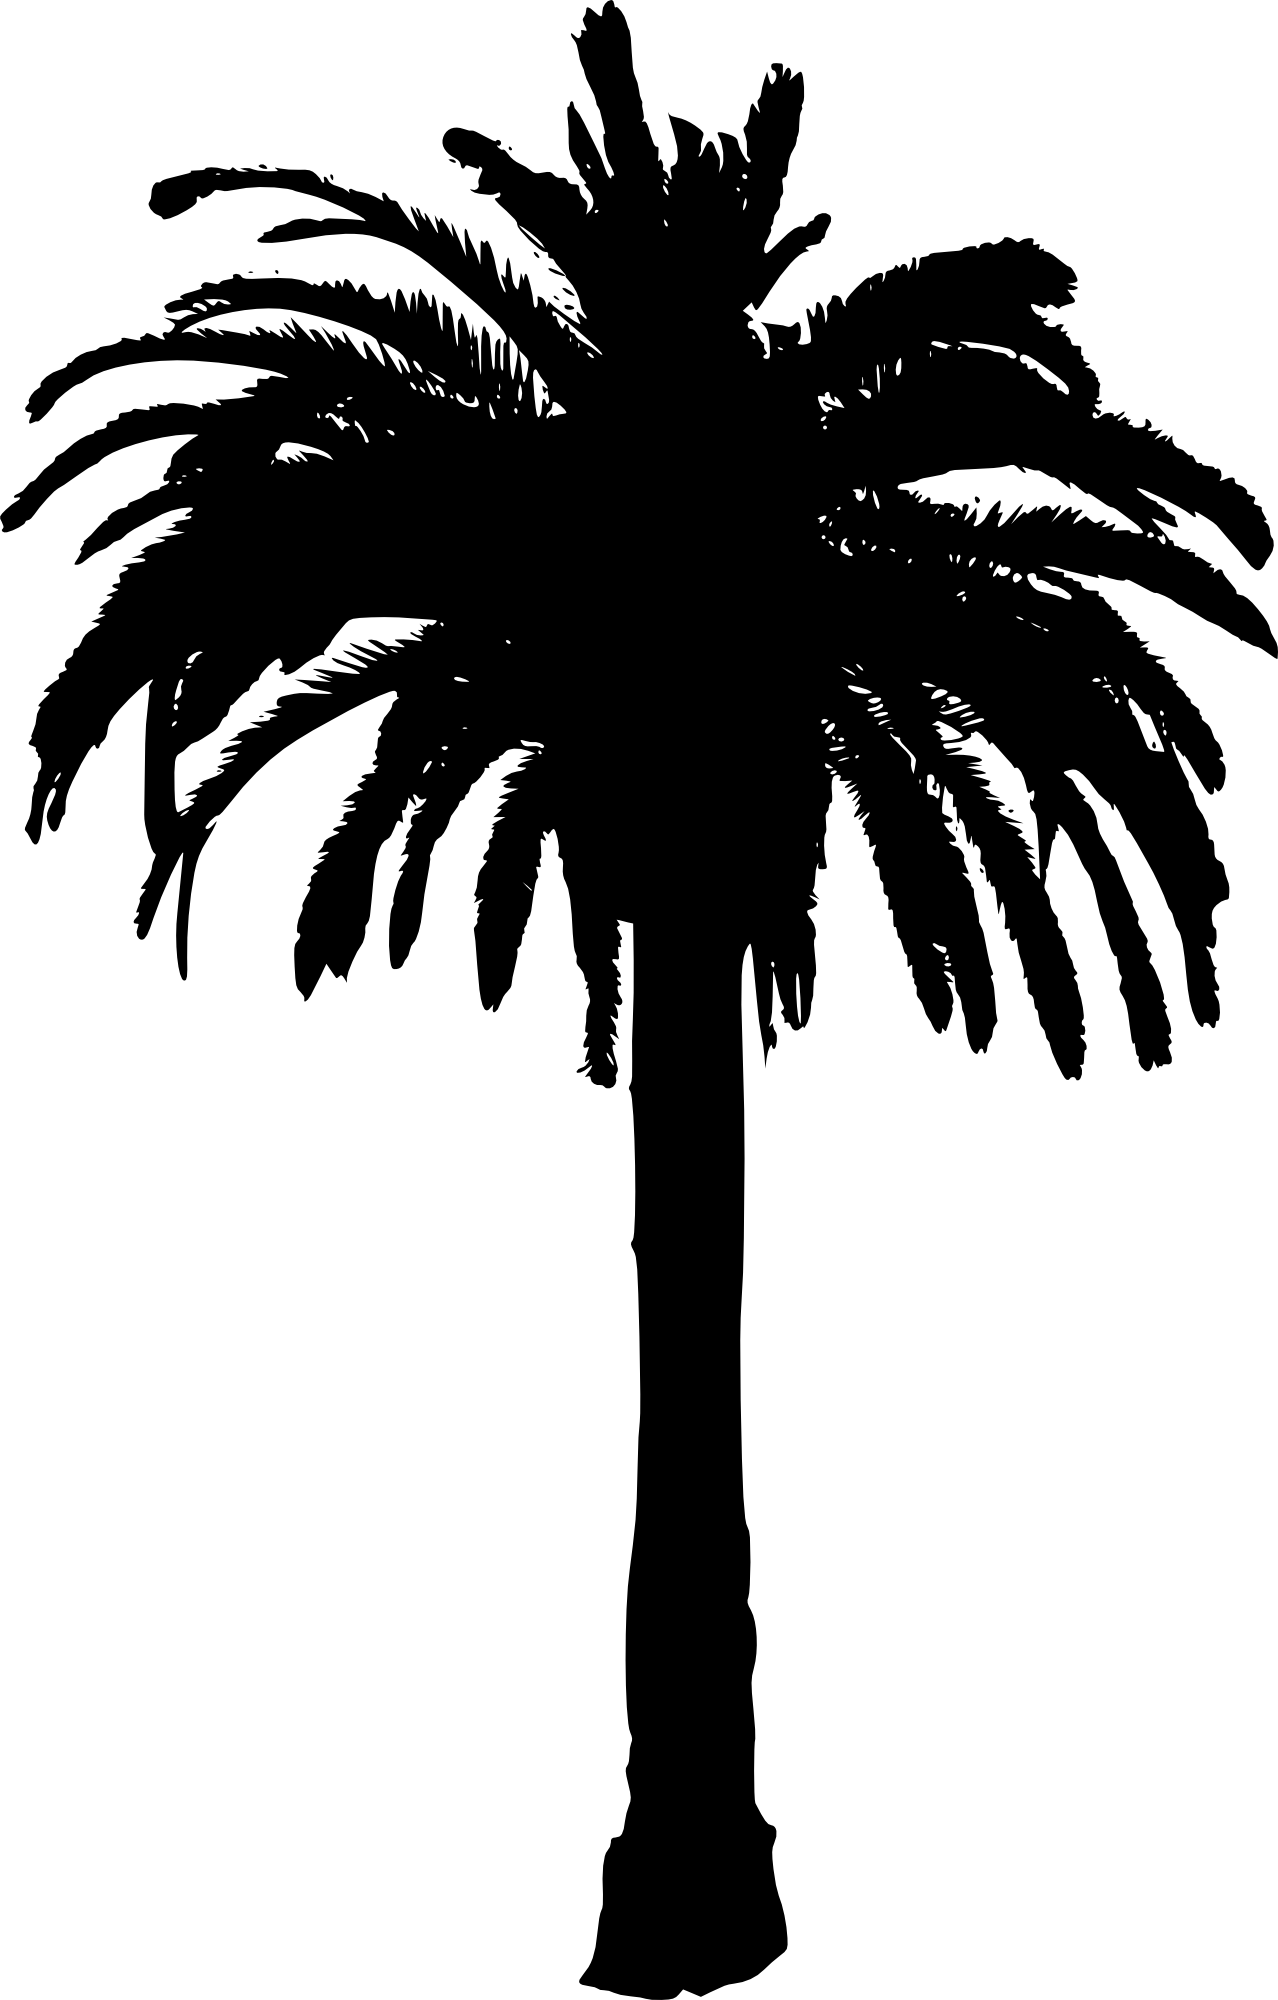 palmetto tree silhouette at getdrawings com free for personal use rh getdrawings com sc palmetto tree clip art sc palmetto tree clip art